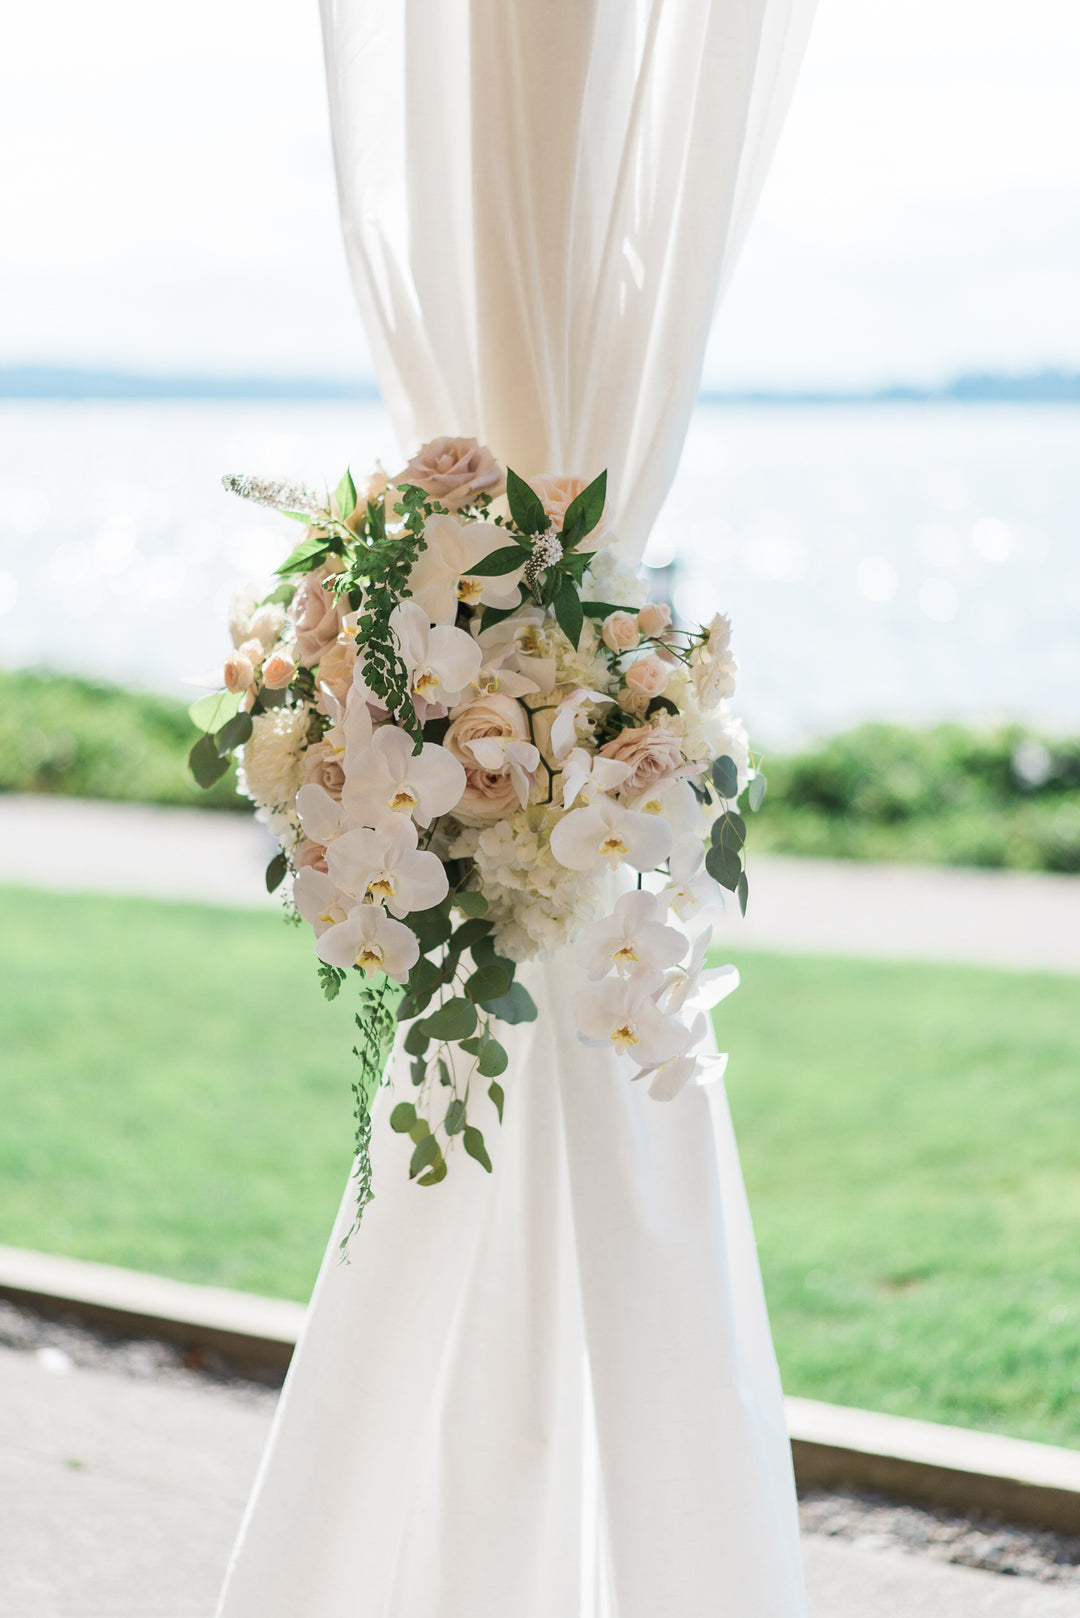 Wedding Flowers | A Grand Wedding On The Water | Kate Aspen